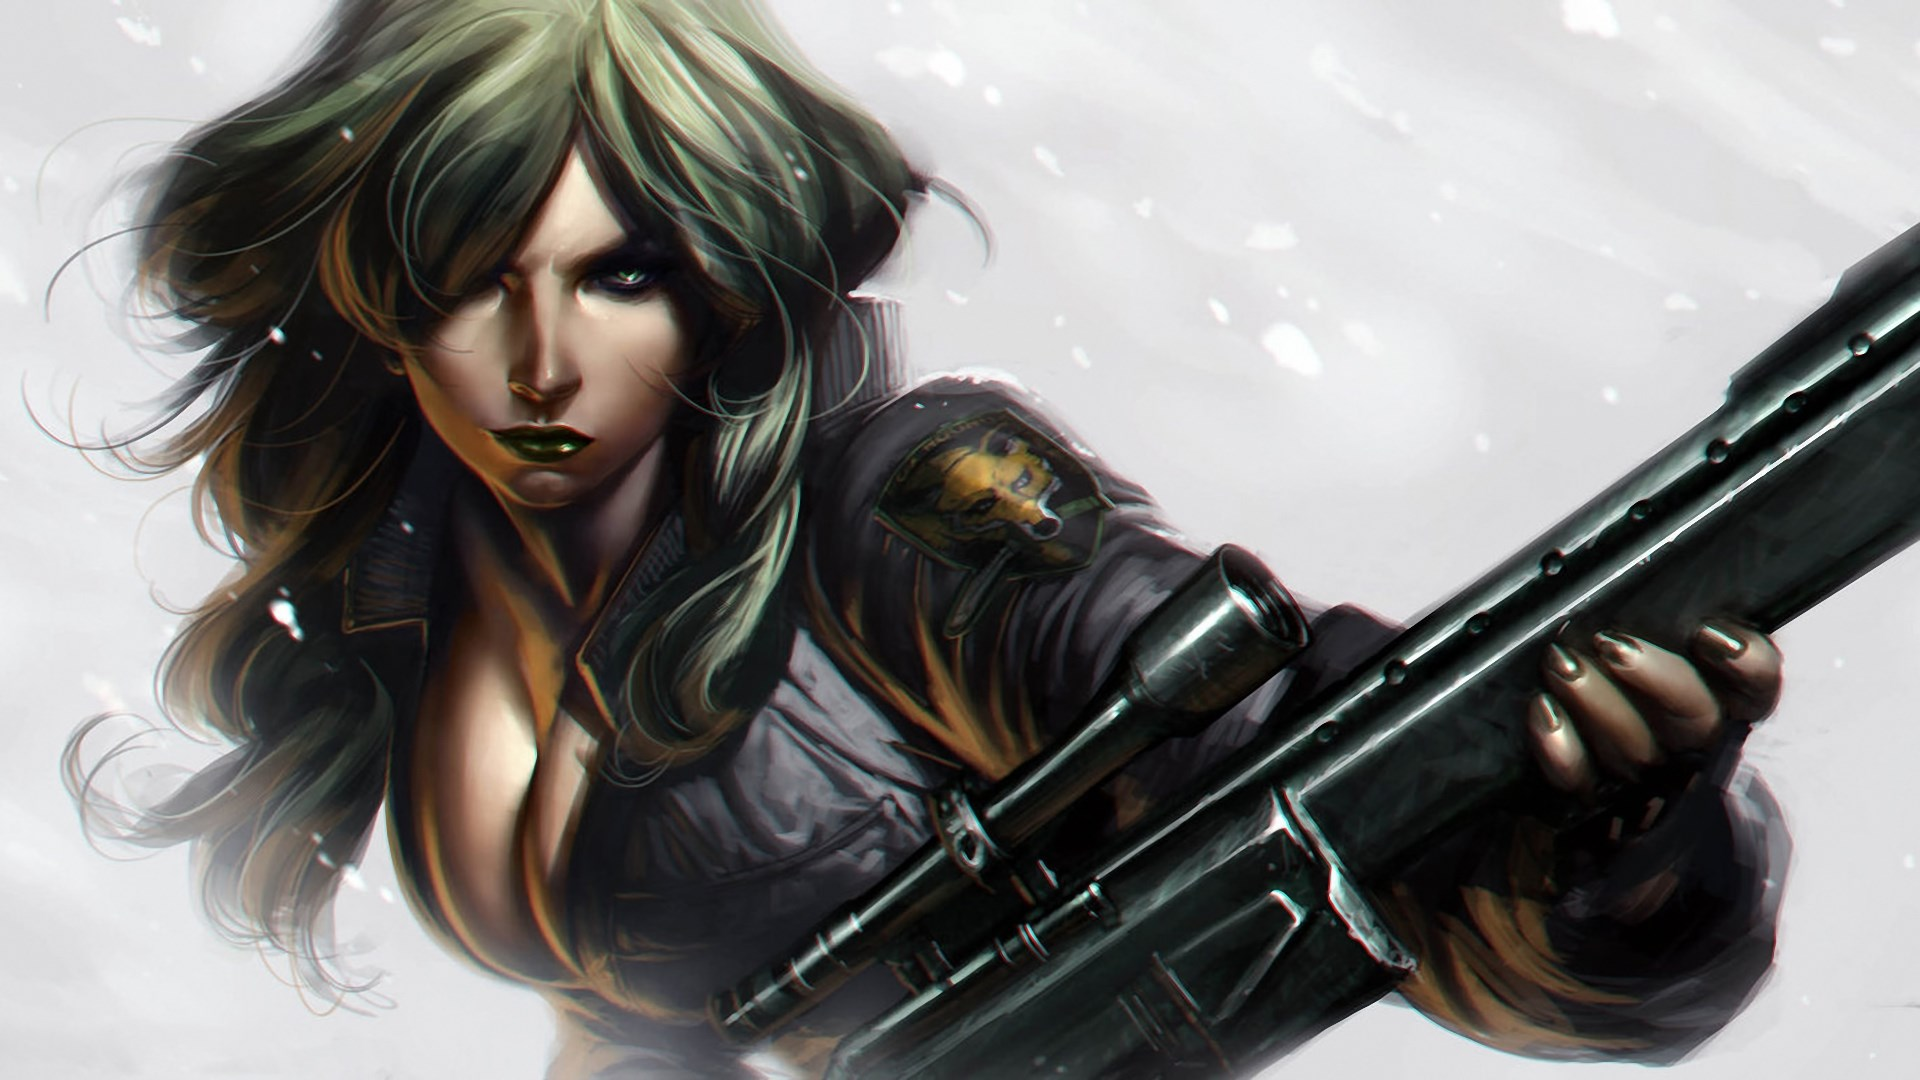 1920x1080-Free-screensaver-metal-gear-solid-wallpaper-wp360803-1